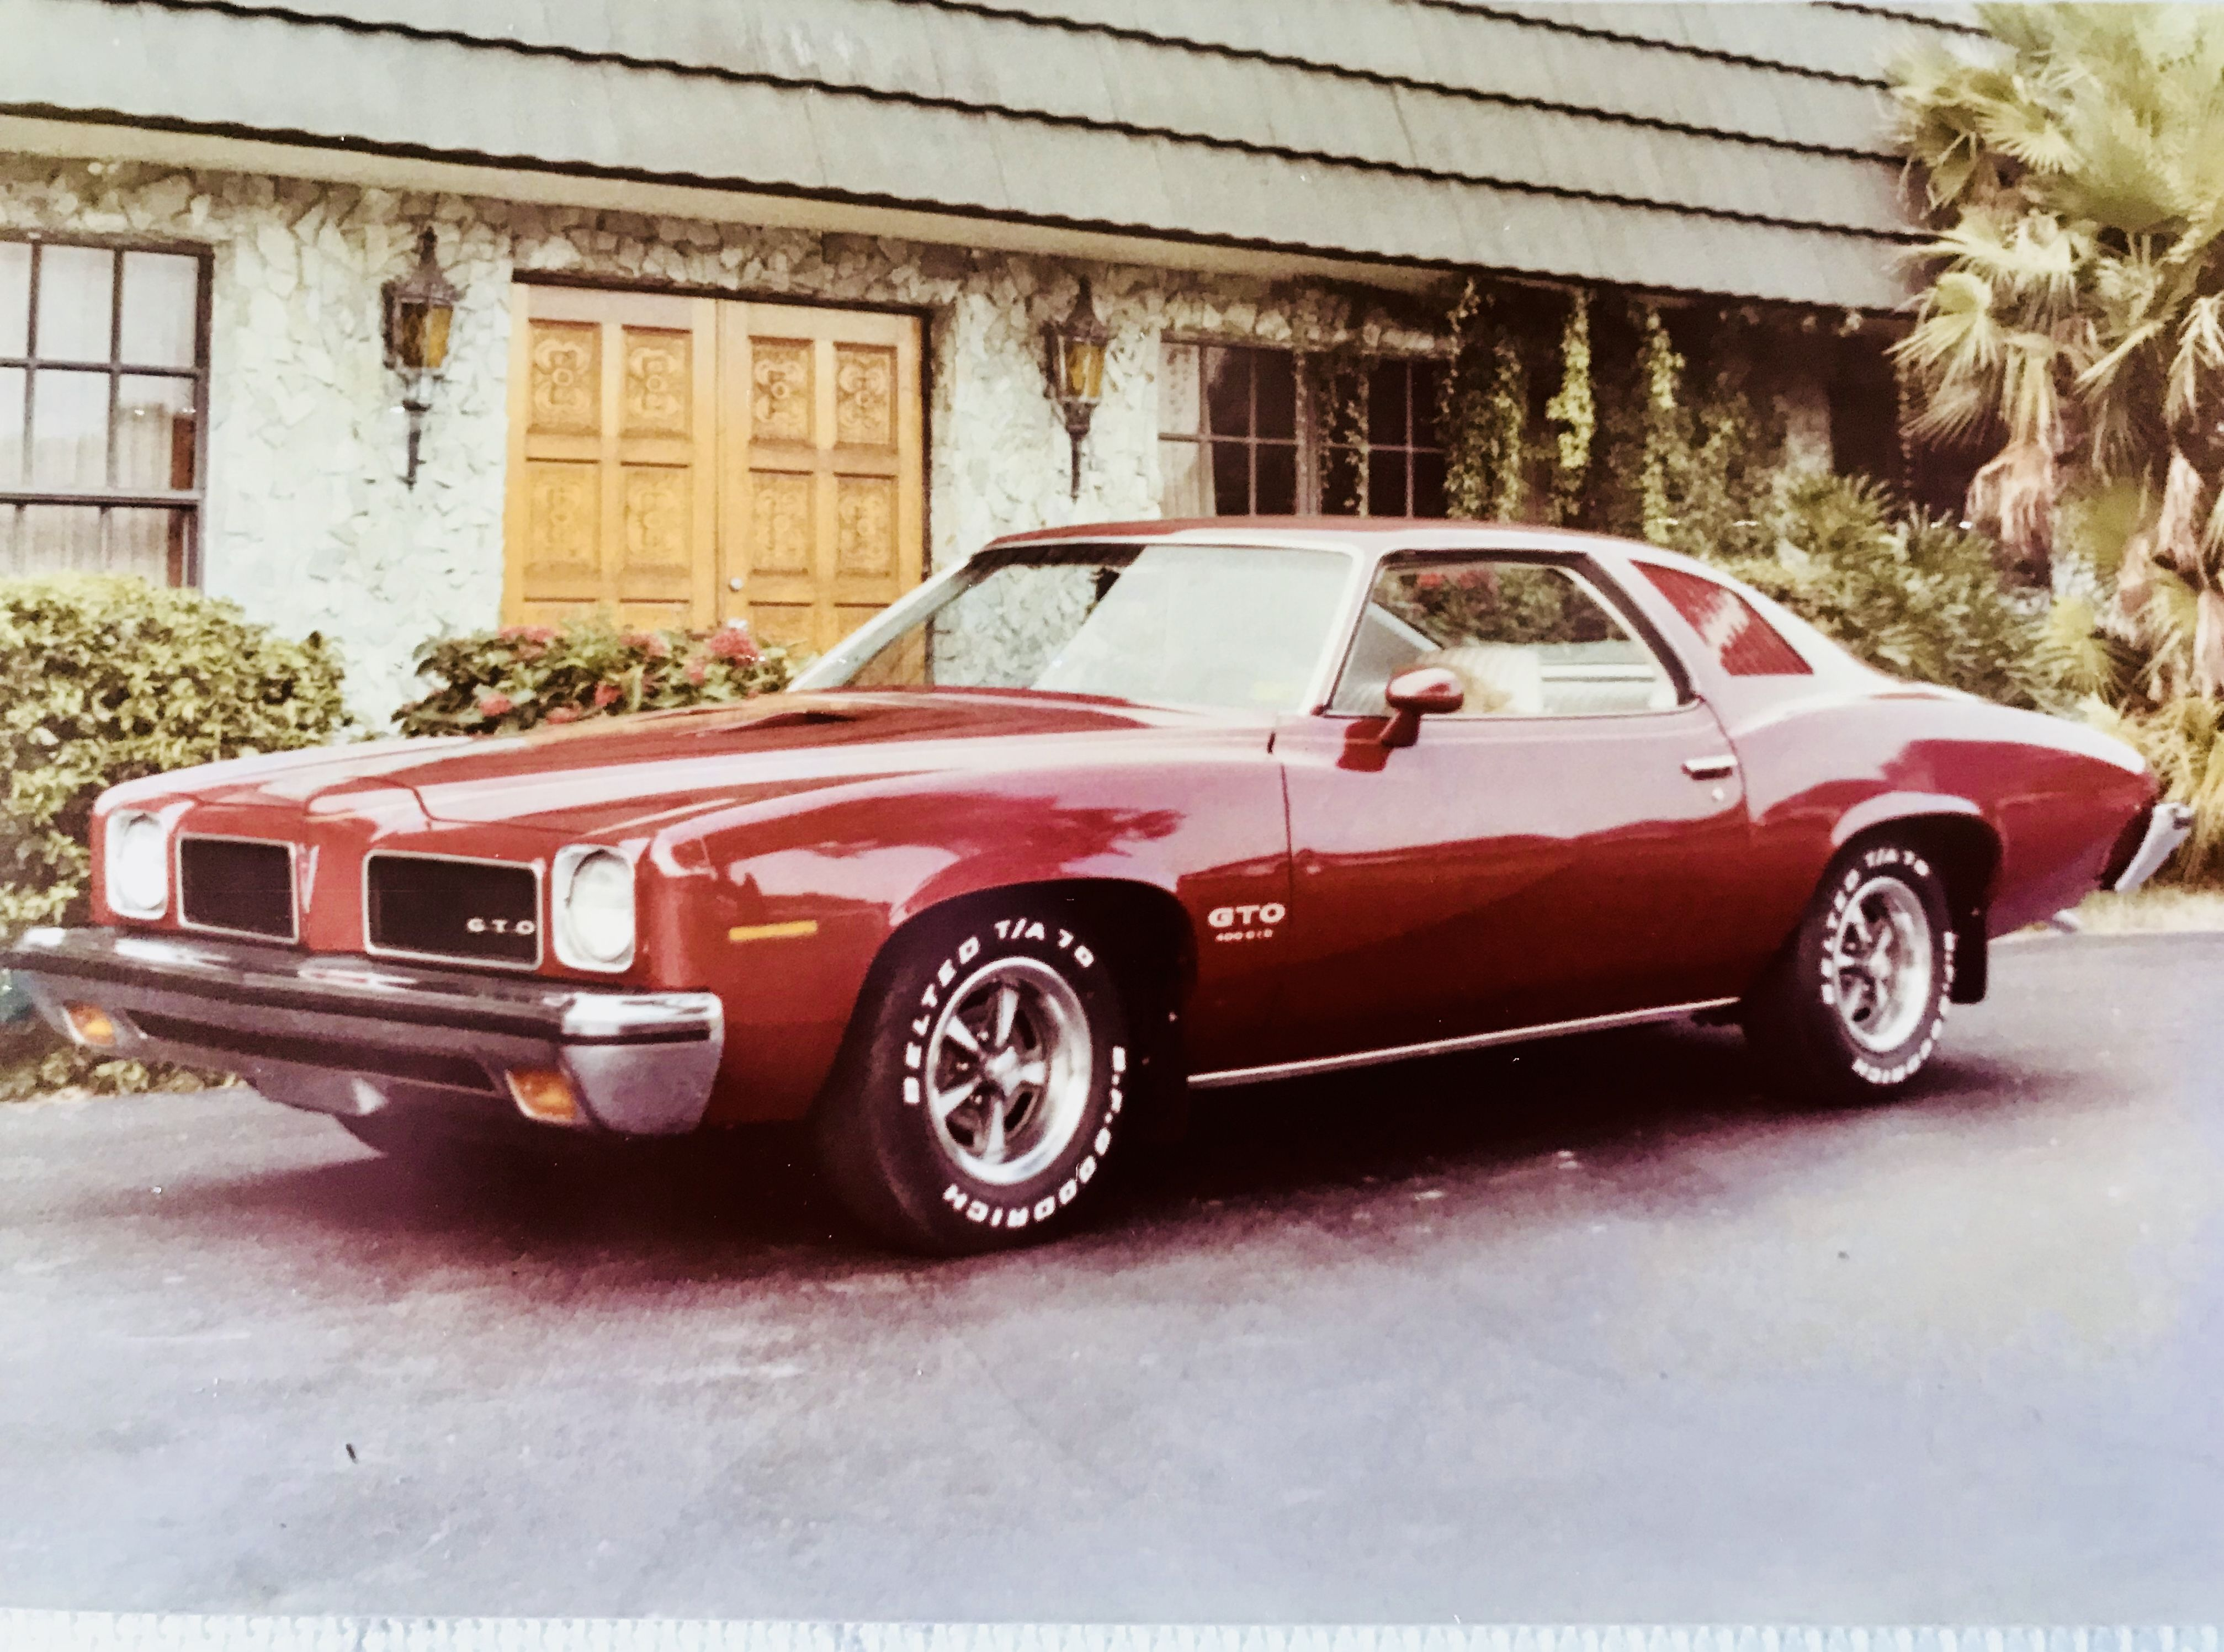 1973 Pontiac Gto Lemans Sport Coupe Florentine Red With White